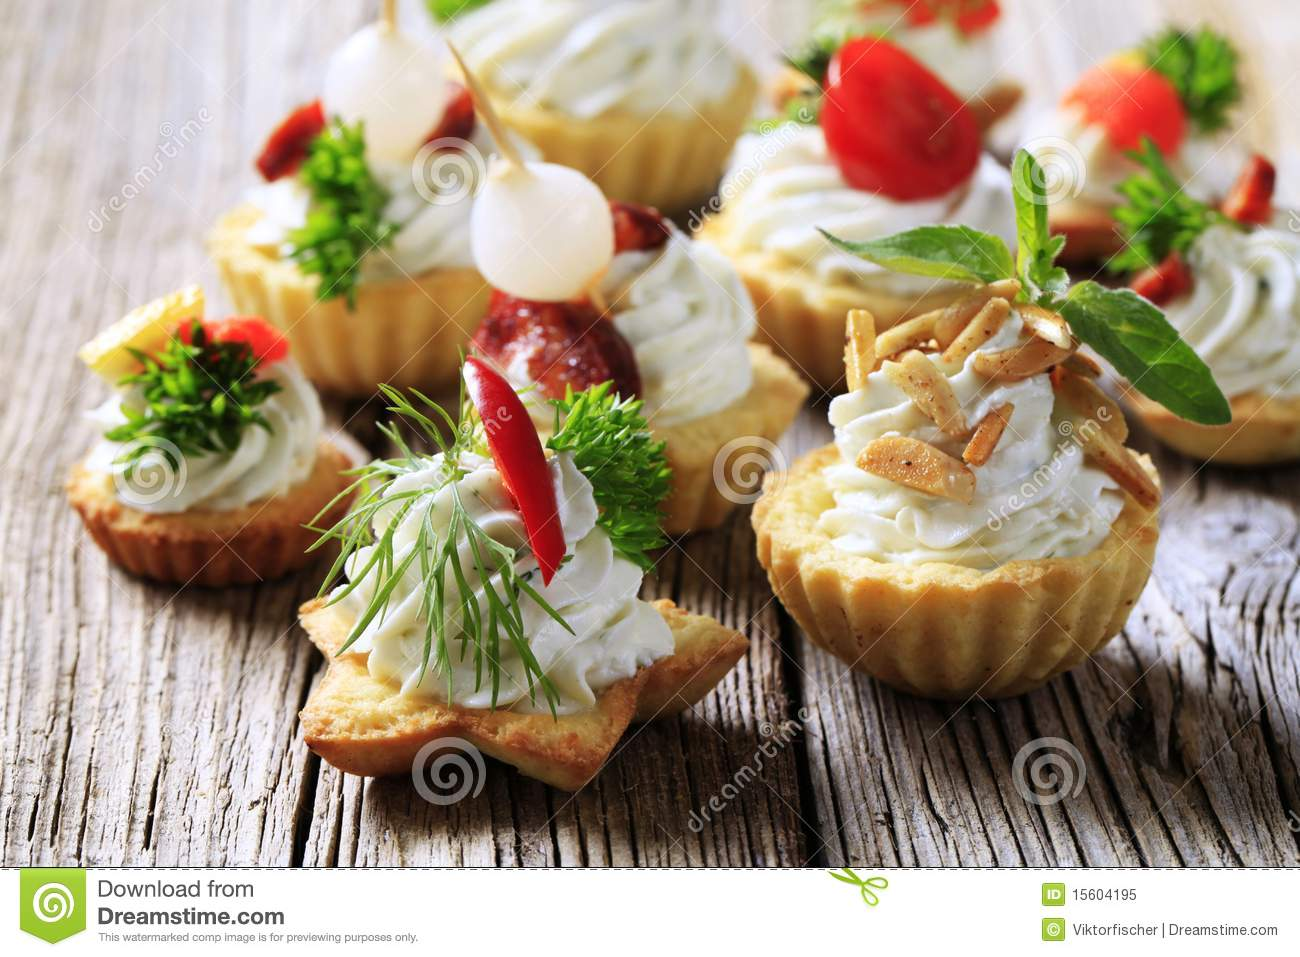 Variety of canapes royalty free stock photo image 15604195 for Canape dictionary